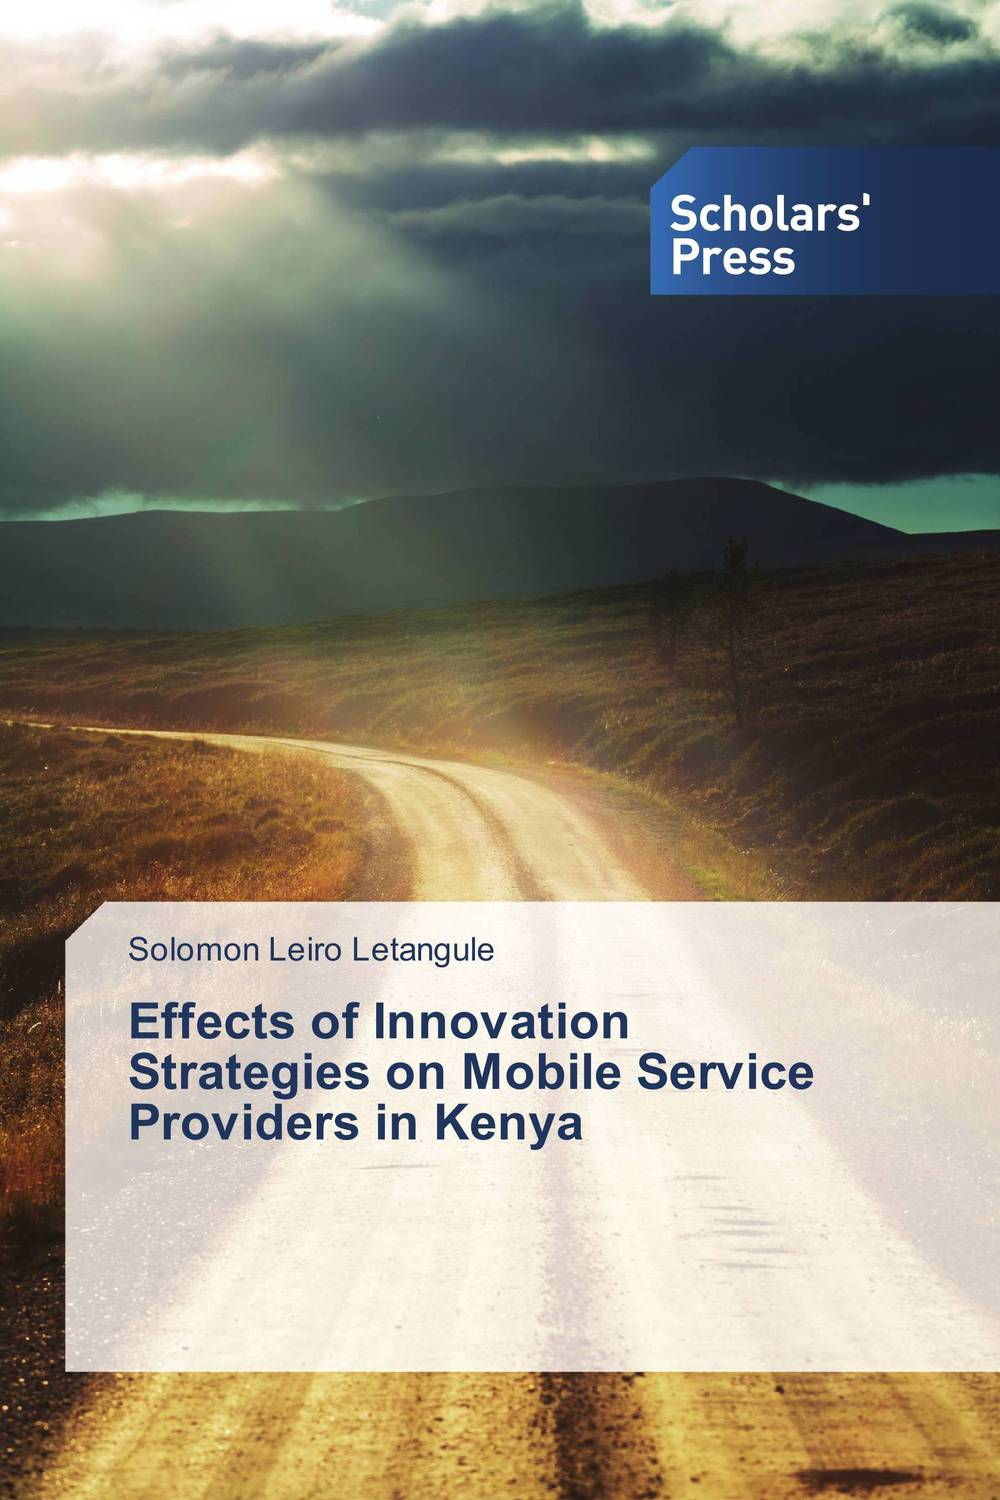 Effects of Innovation Strategies on Mobile Service Providers in Kenya royal london royal london 21165 02